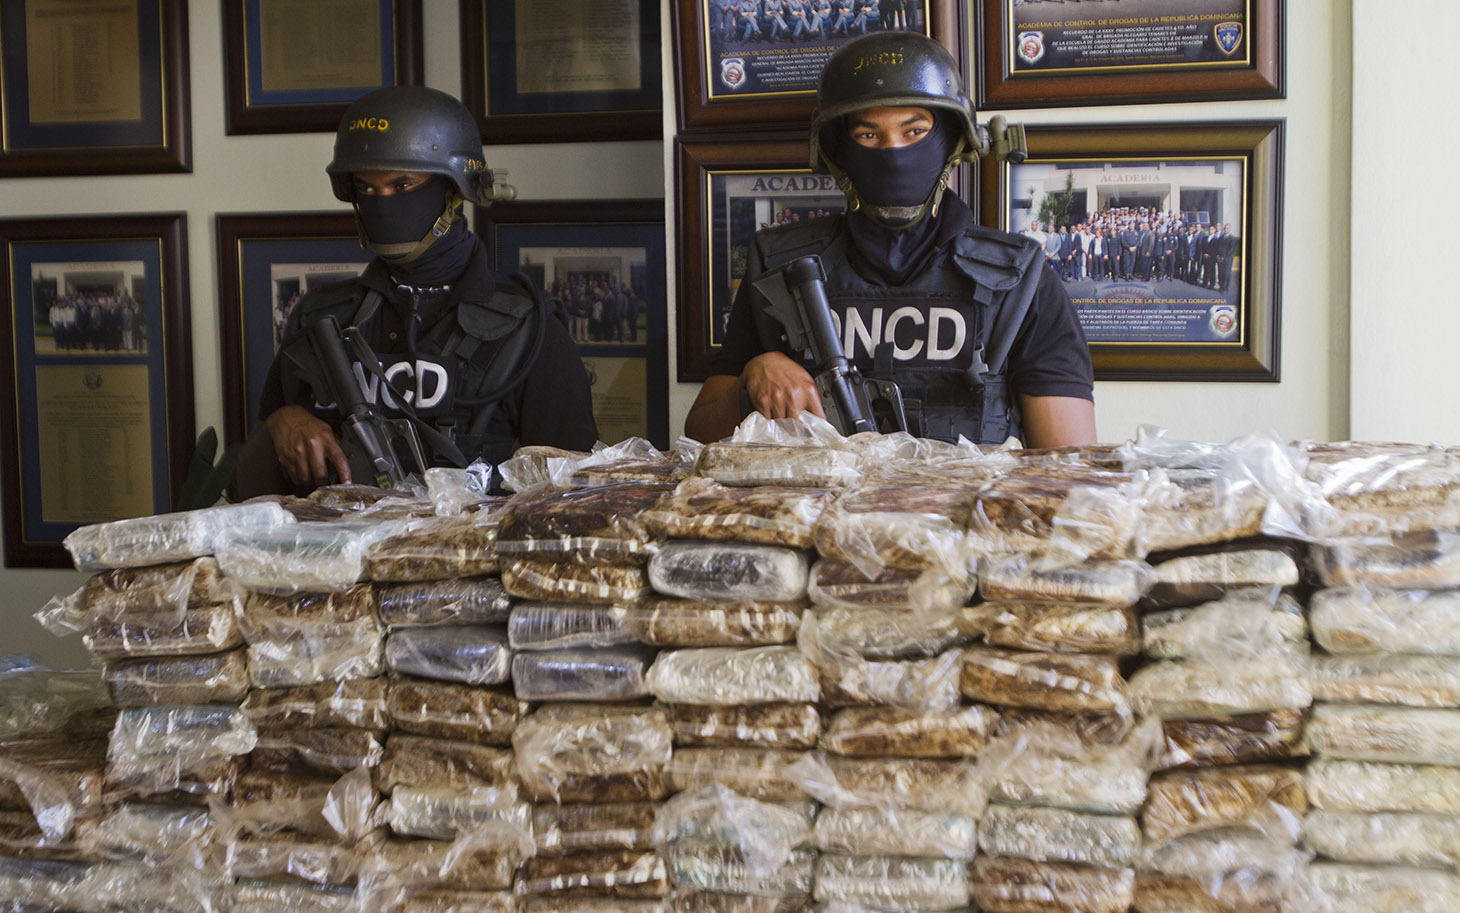 Members+of+a+drug+squad+guard+more+than+700+kilos+of+cocaine+divided+into+682+packages+which+were+seized+during+an+operation%2C+in+Santo+Domingo+on+March+21%2C+2013.